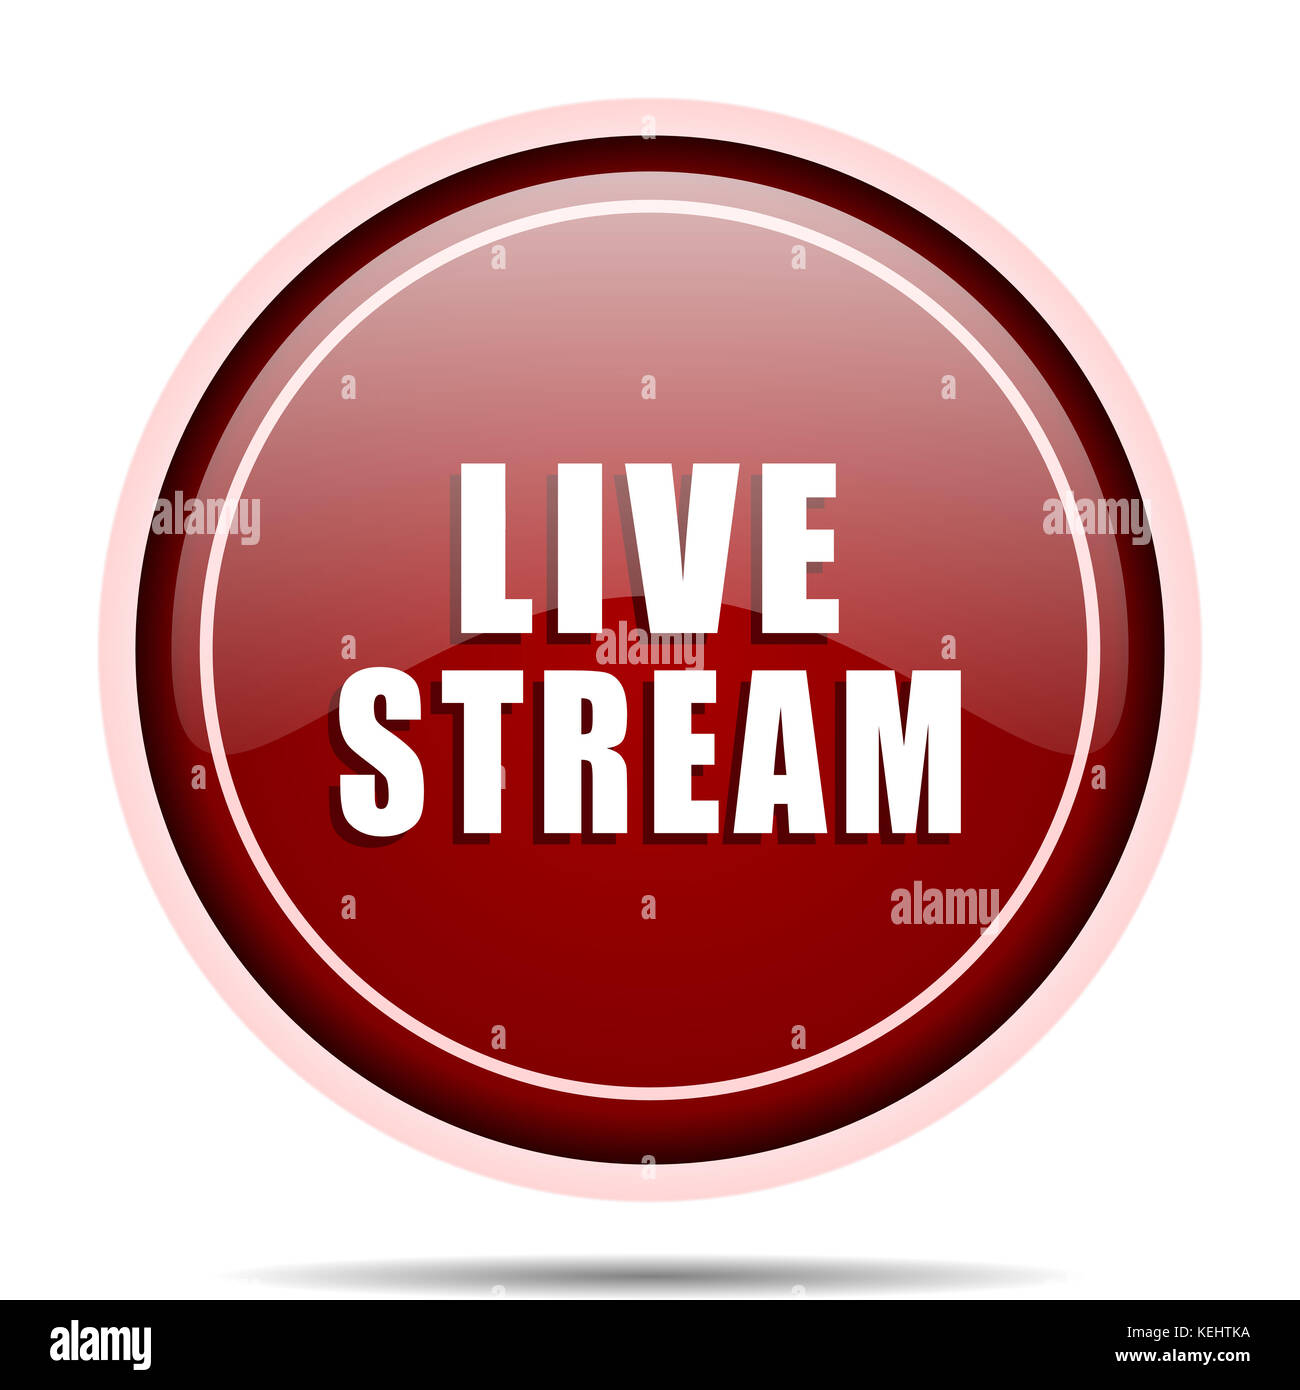 Live stream red glossy round web icon. Circle isolated internet button for webdesign and smartphone applications. - Stock Image